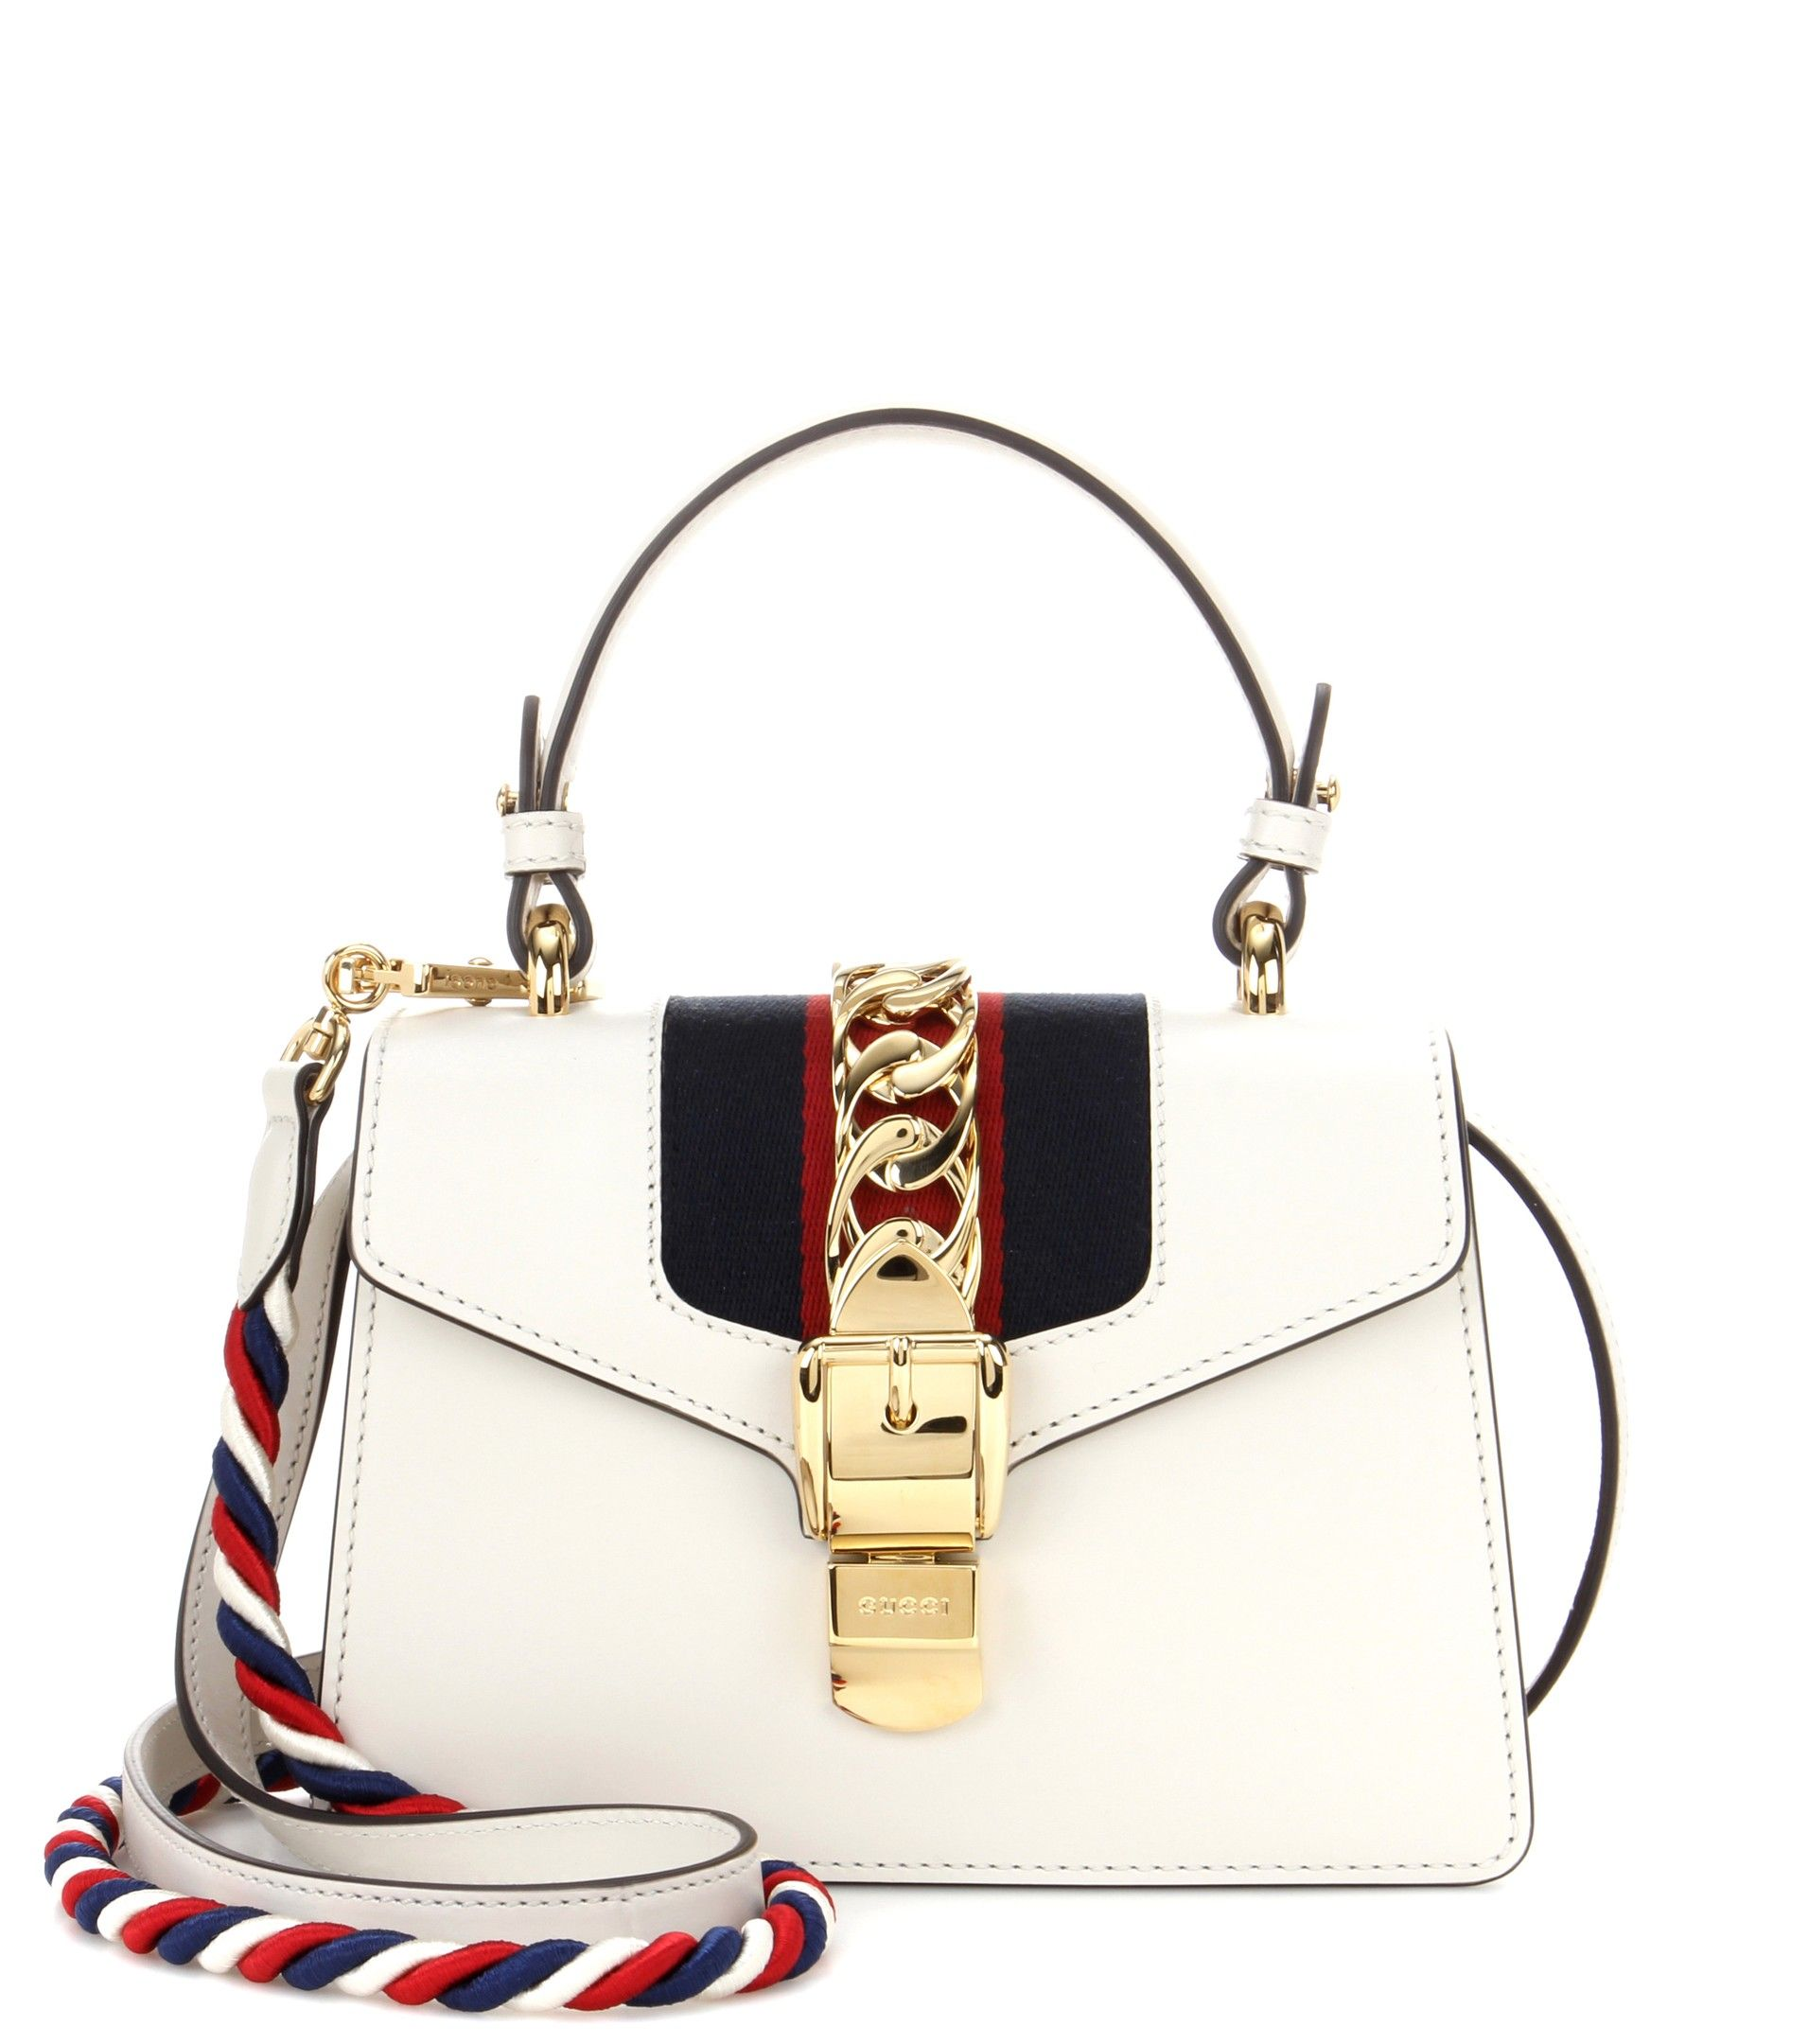 GUCCI Sylvie Mini leather crossbody bag  7c07d4fe64c37